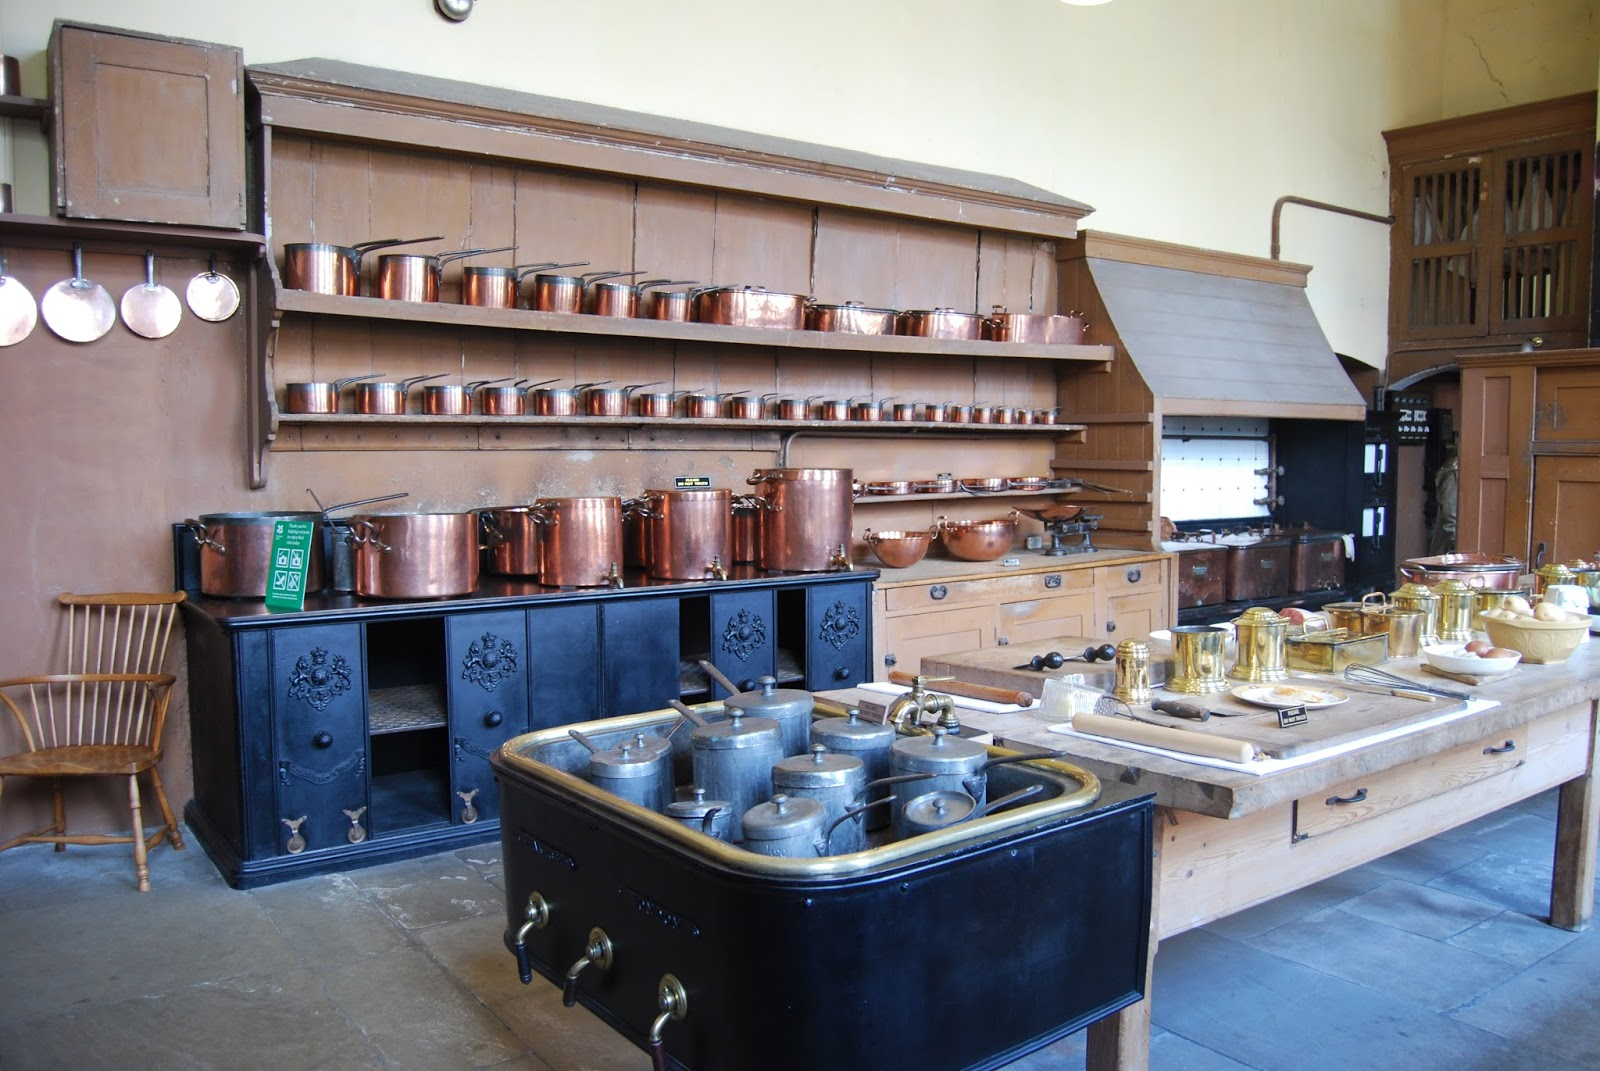 Copper pots and pans, Petworth House, photo by Modern Bric a Brac